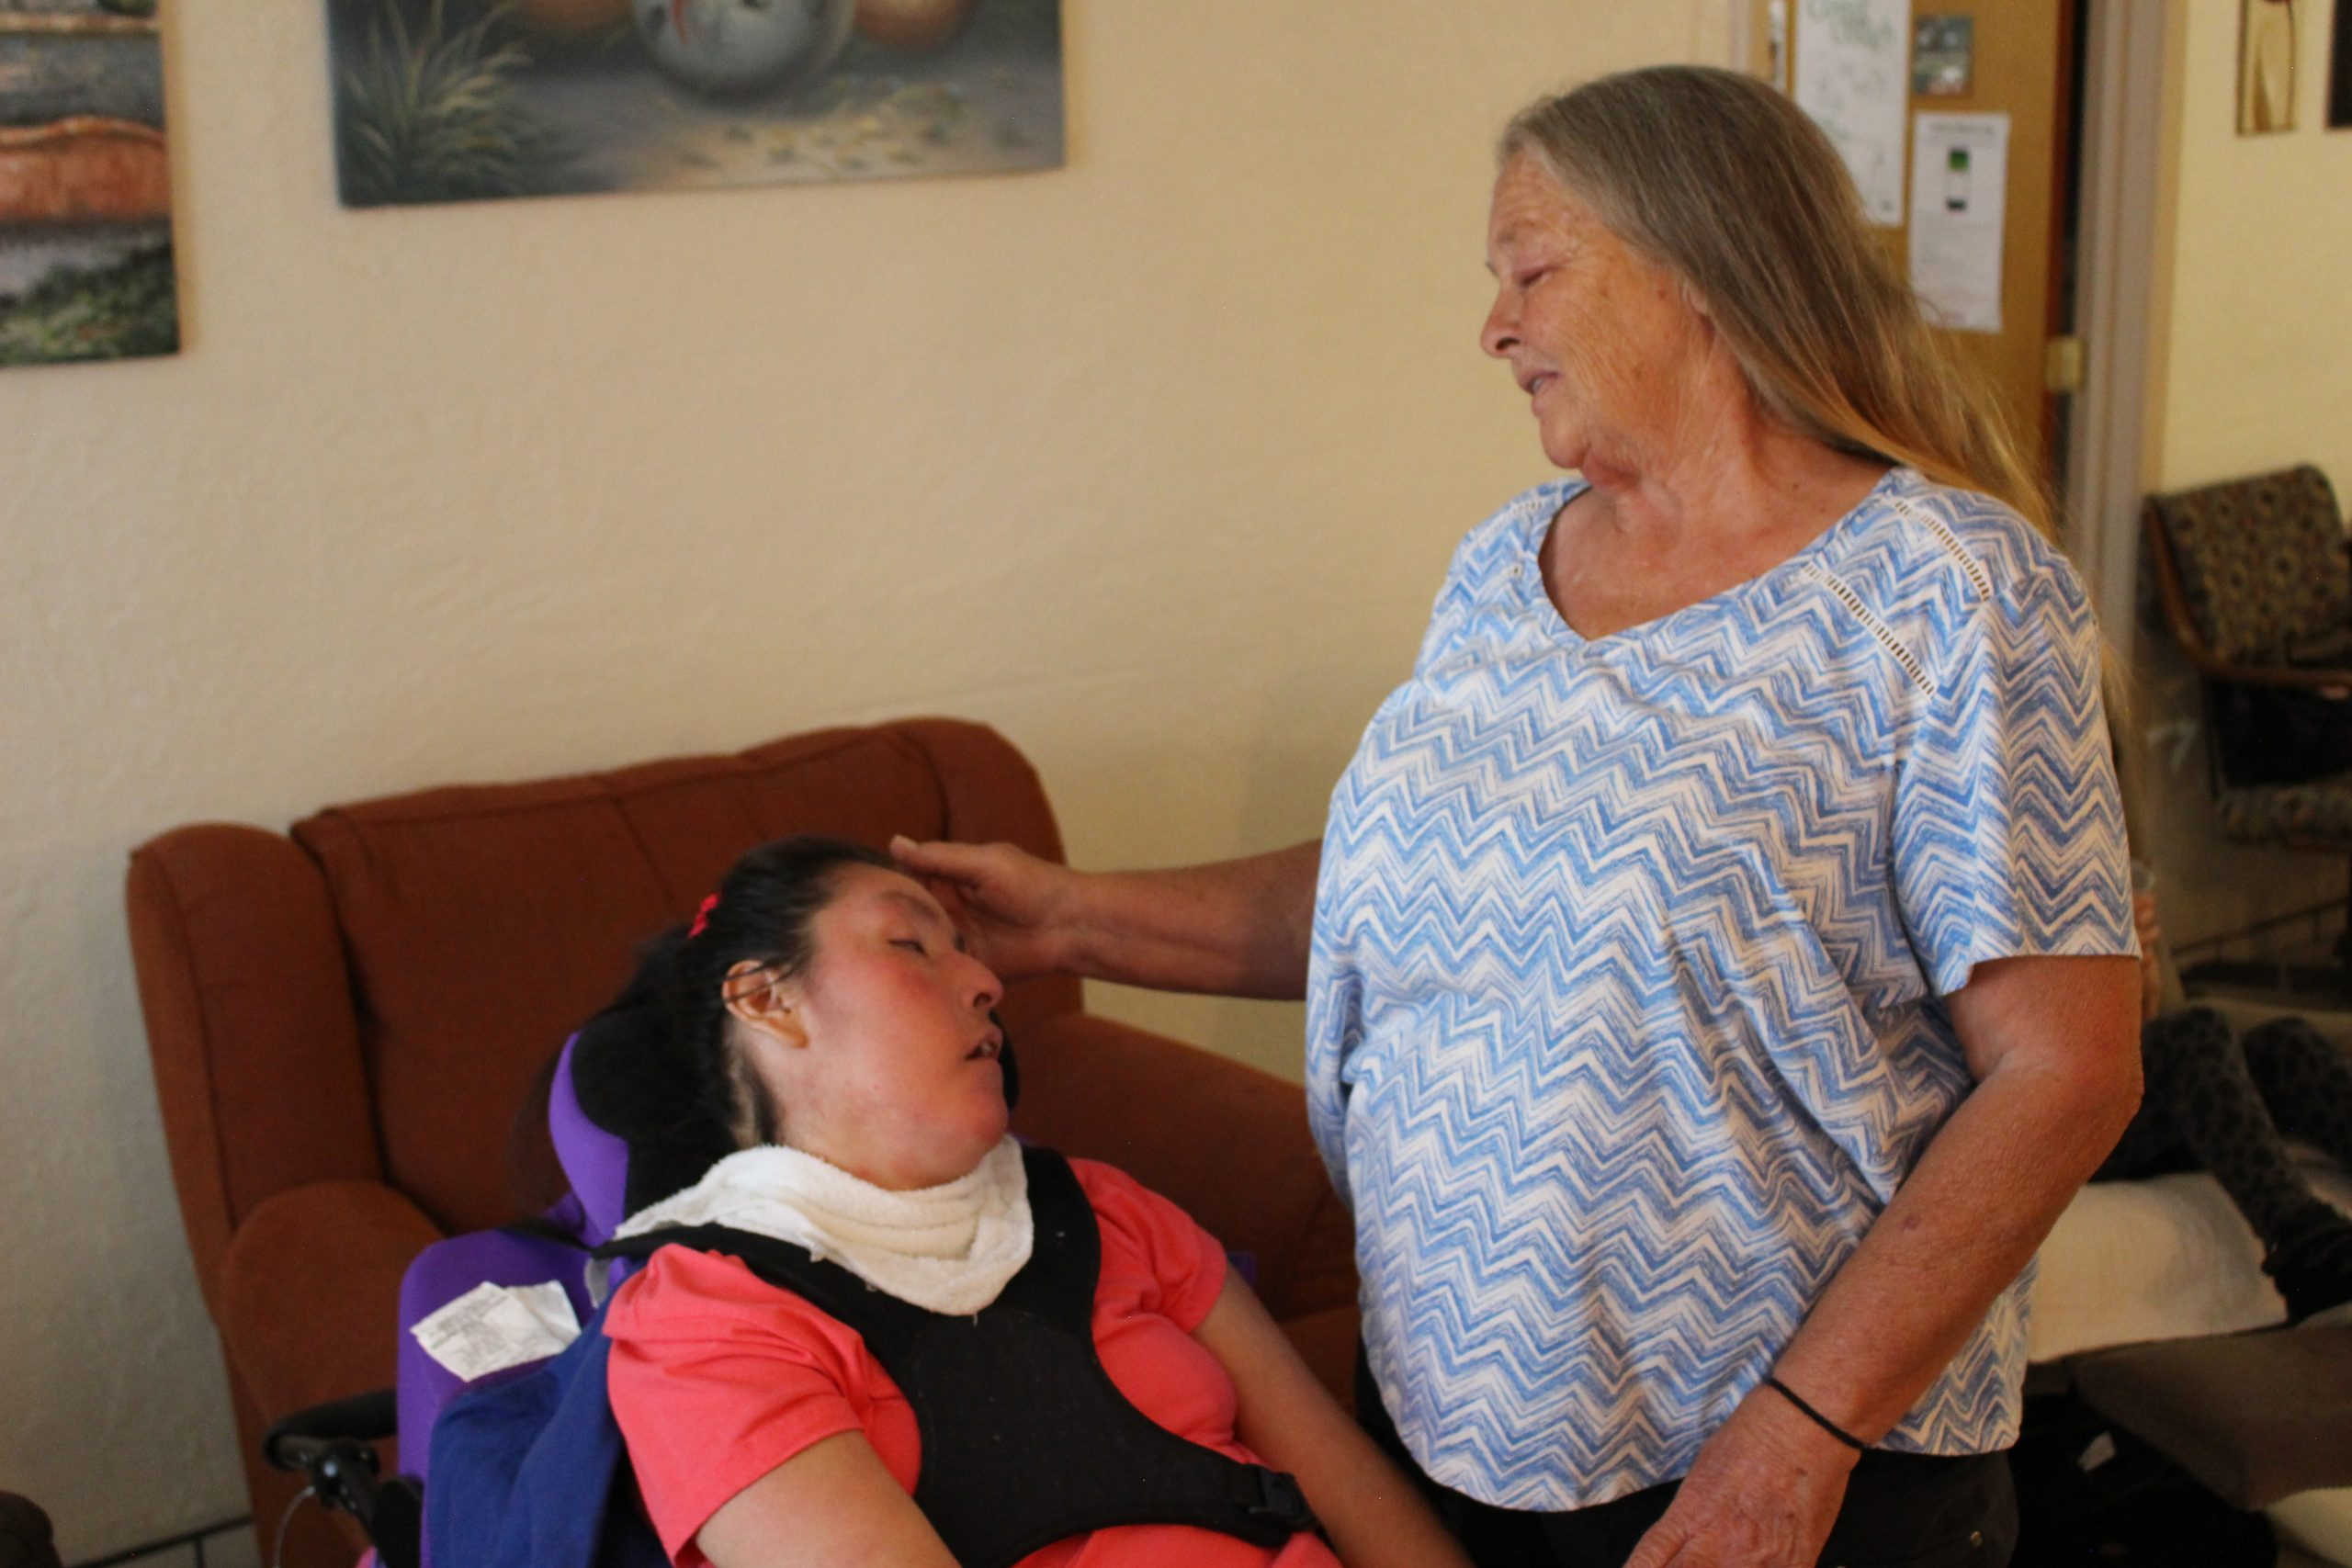 Two women are together in a living room. One uses an electric wheelchair. She is resting. Her support staff Cindy is standing next to her and checking on her.